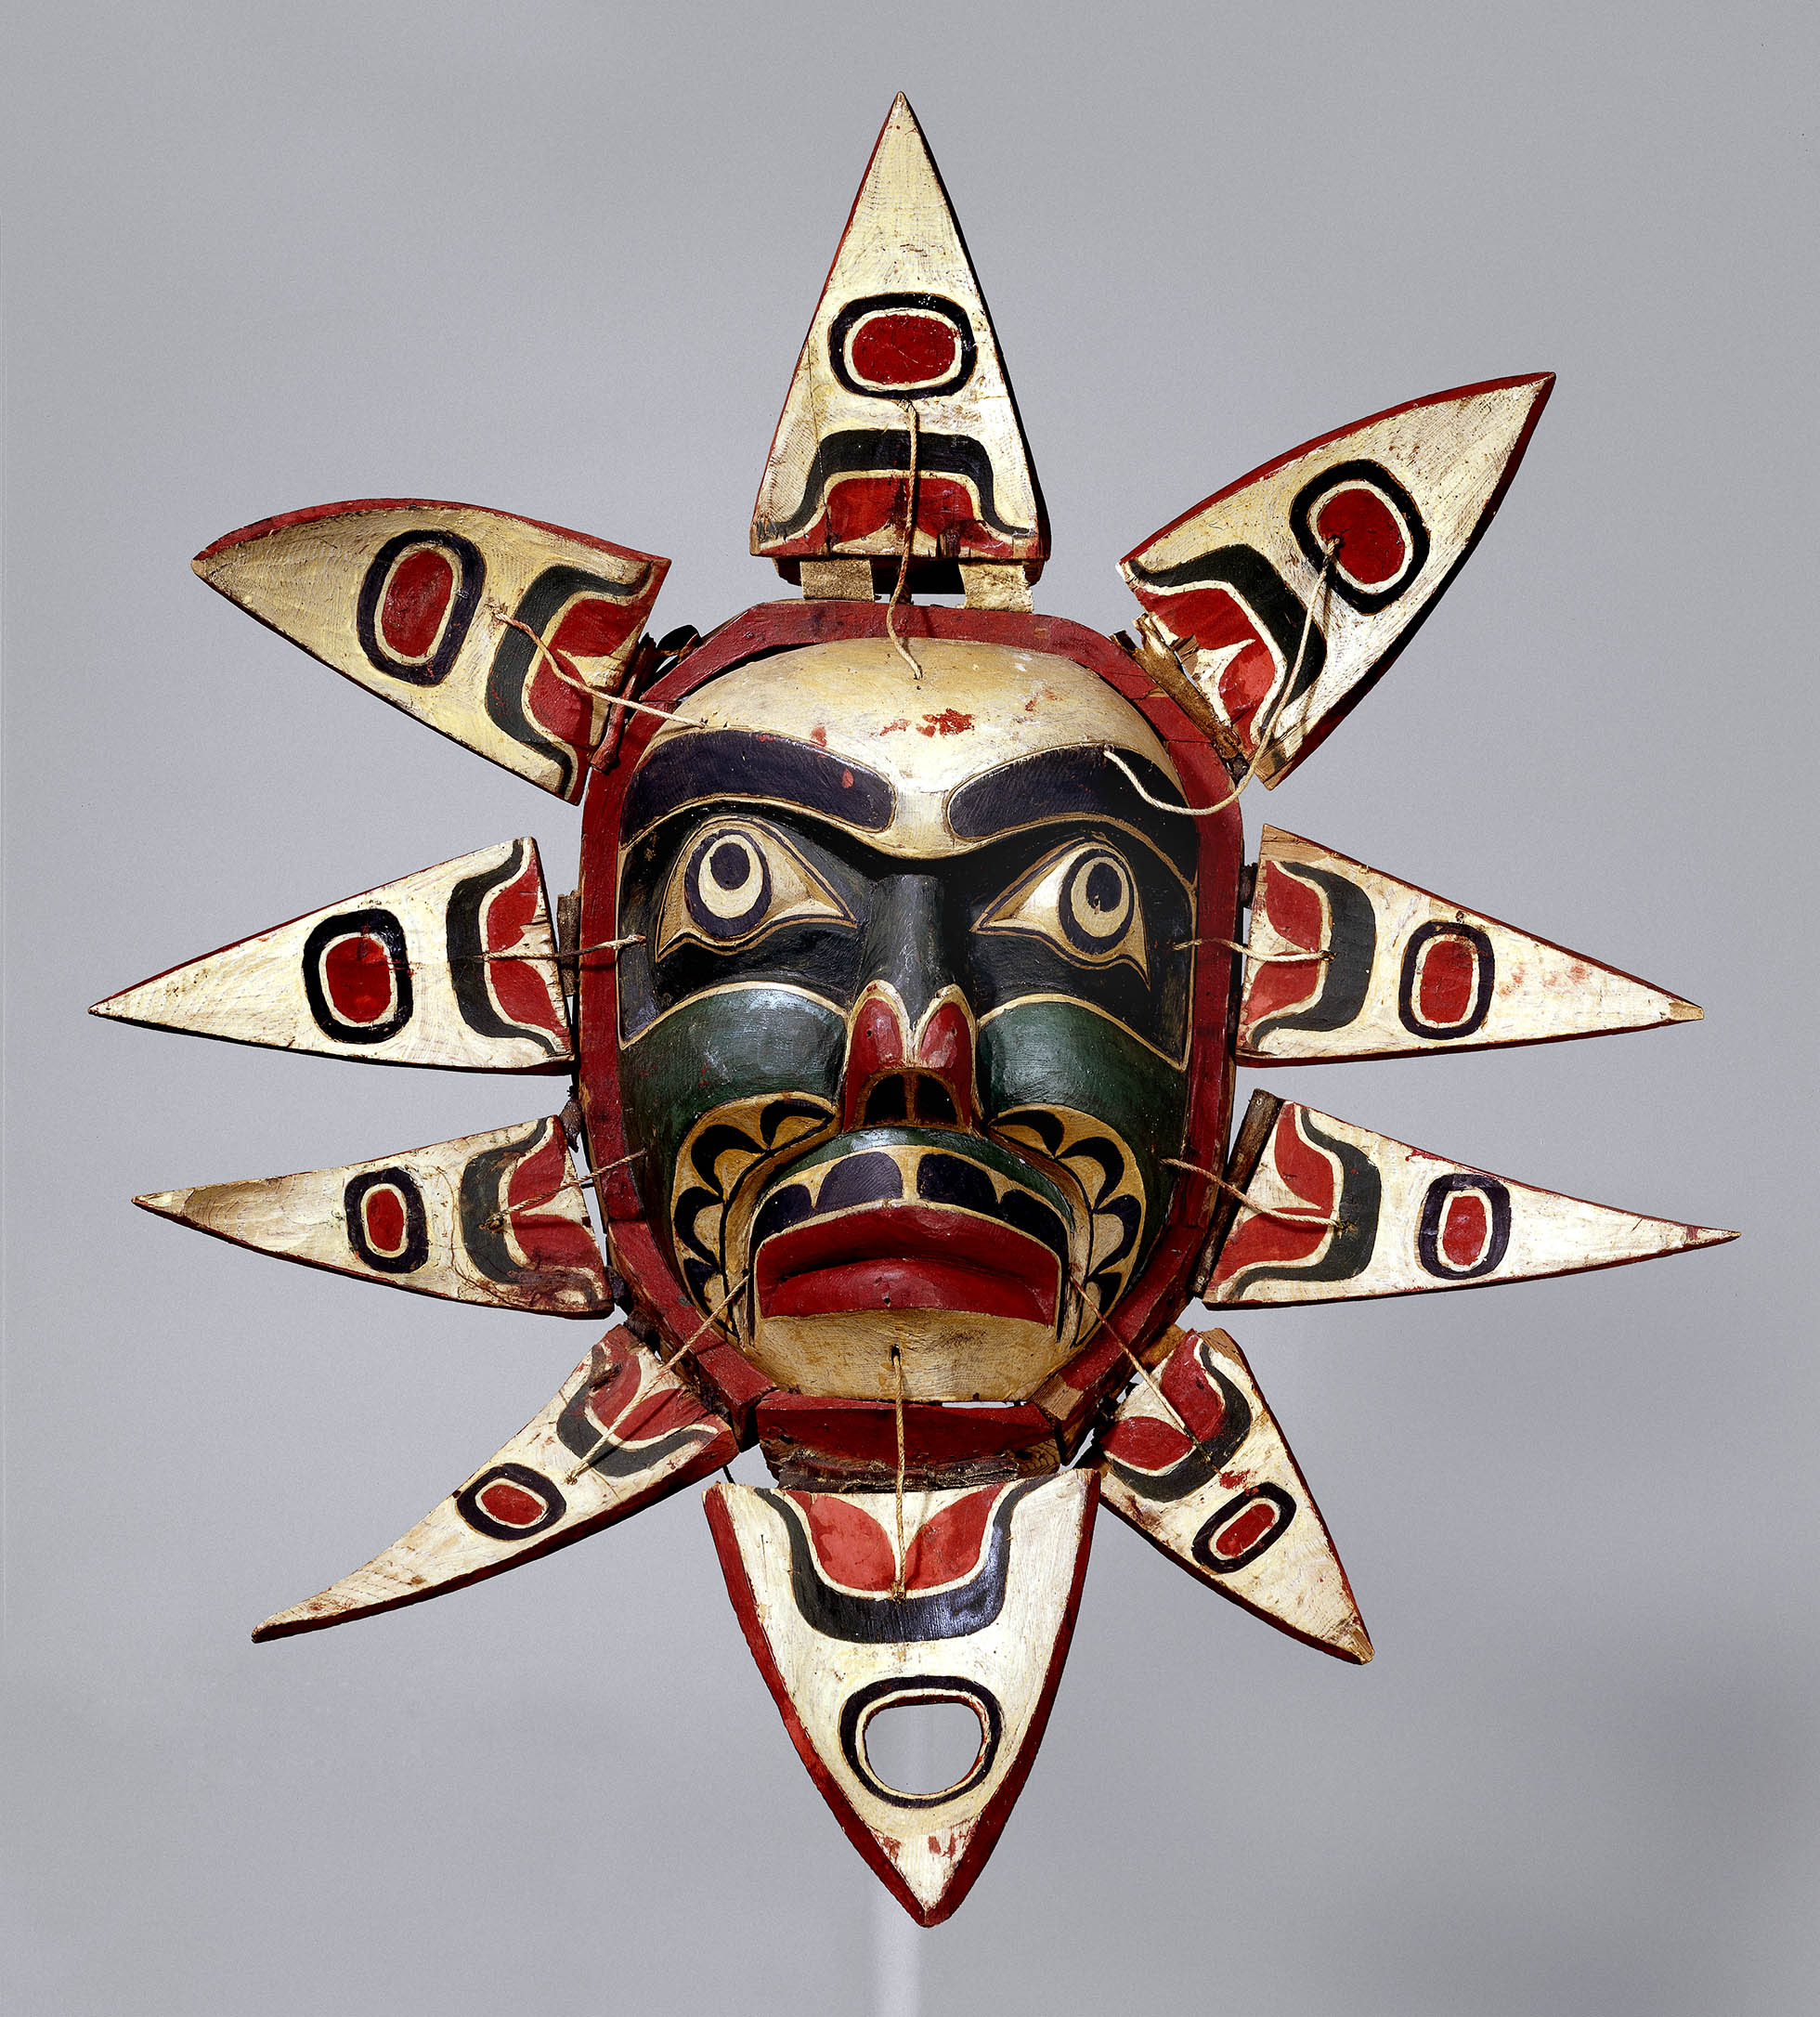 Image of wood and leather mask.